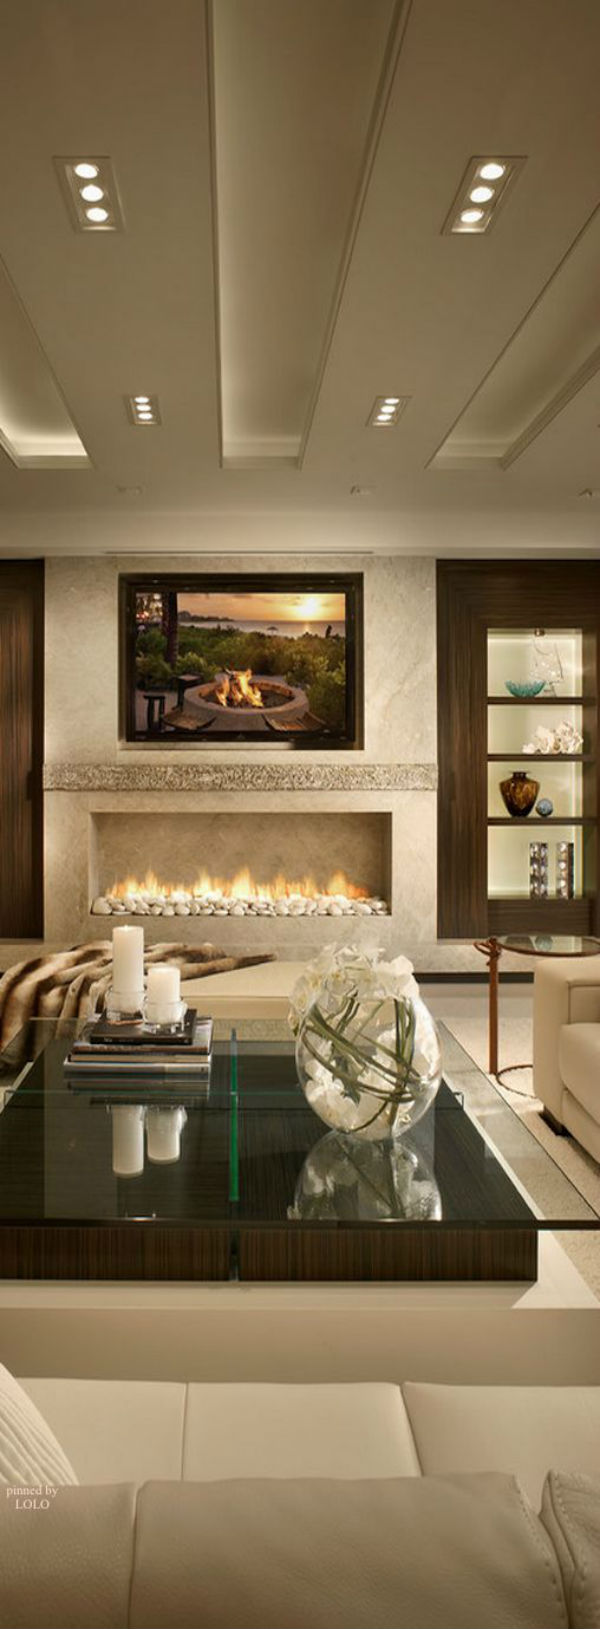 choose the best fireplace for your home interior decoration